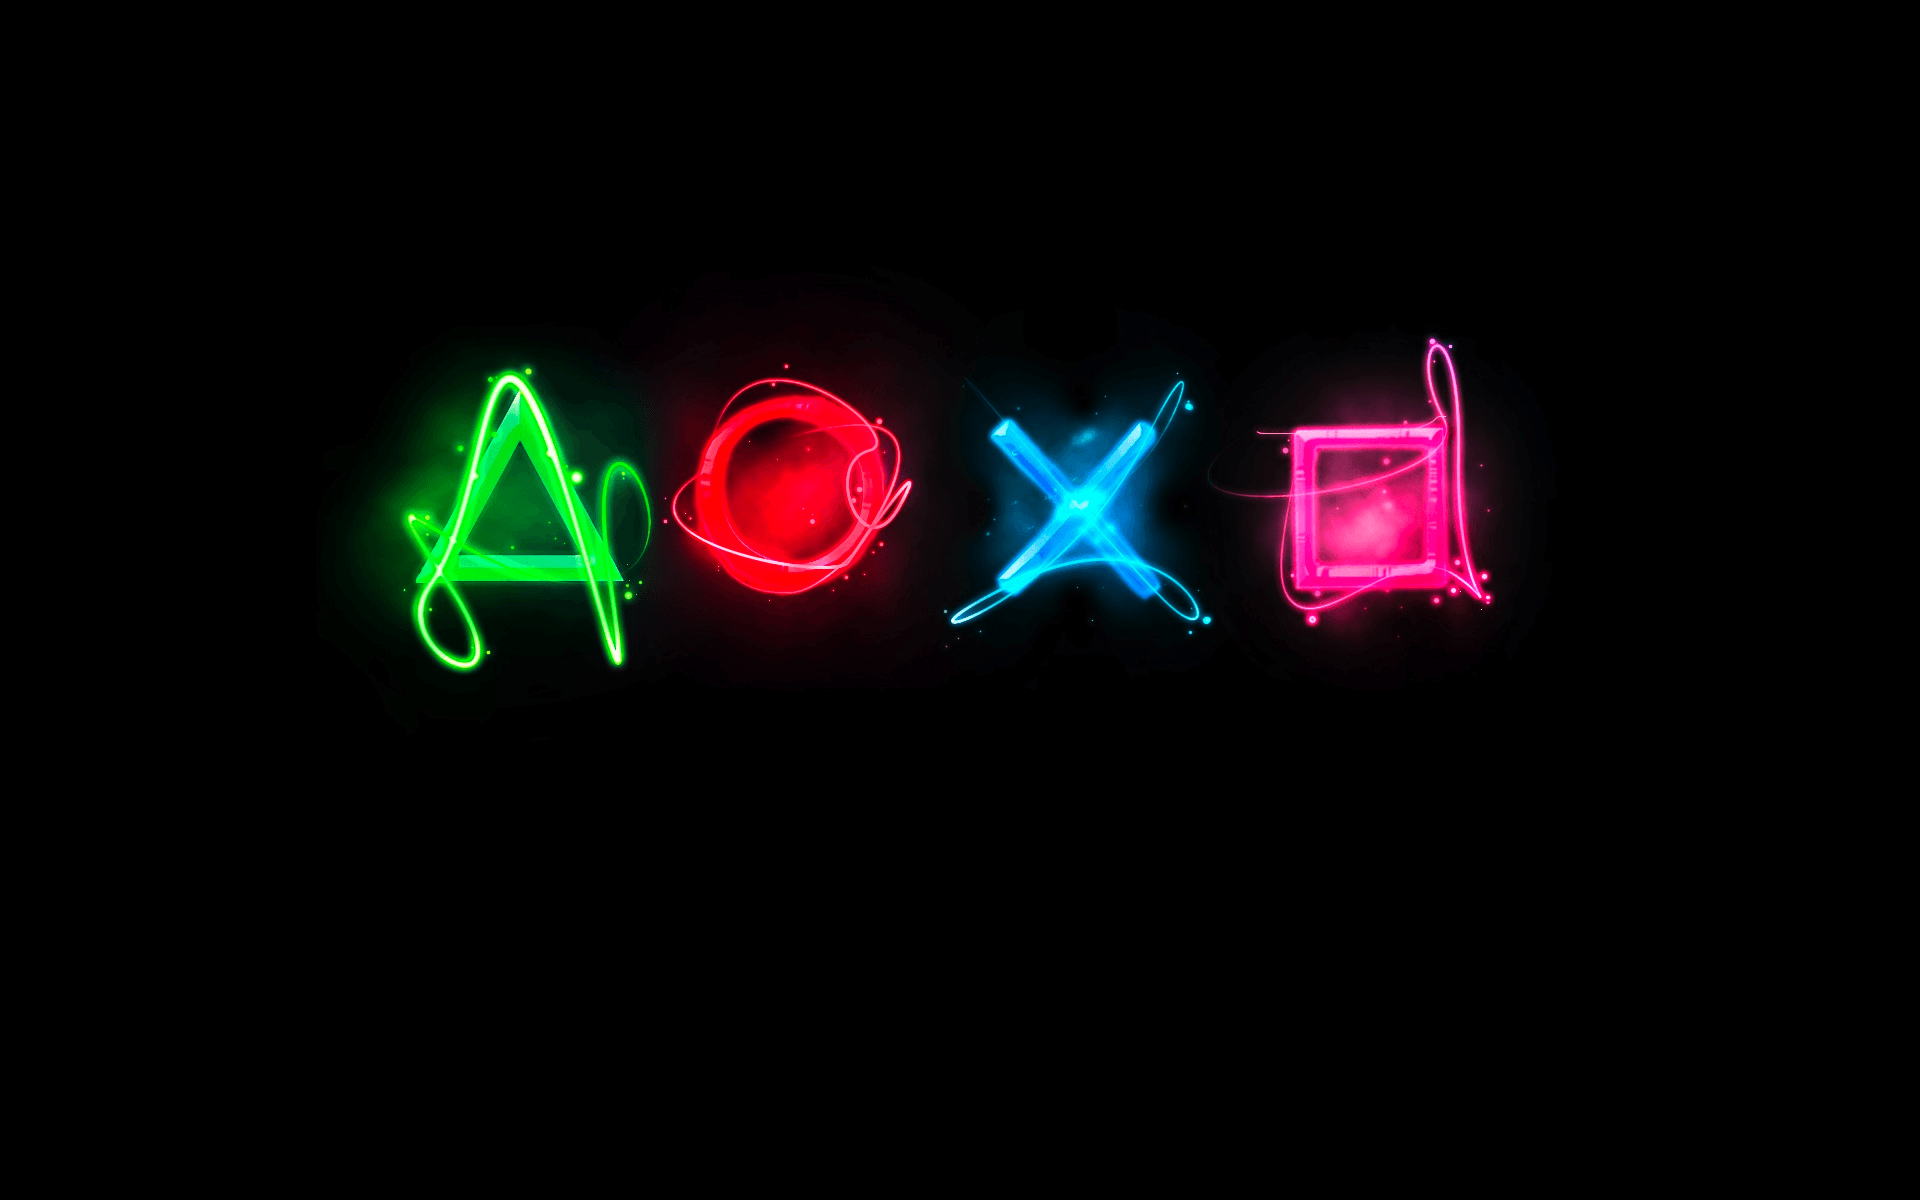 Neon Pc Wallpapers Top Free Neon Pc Backgrounds Wallpaperaccess